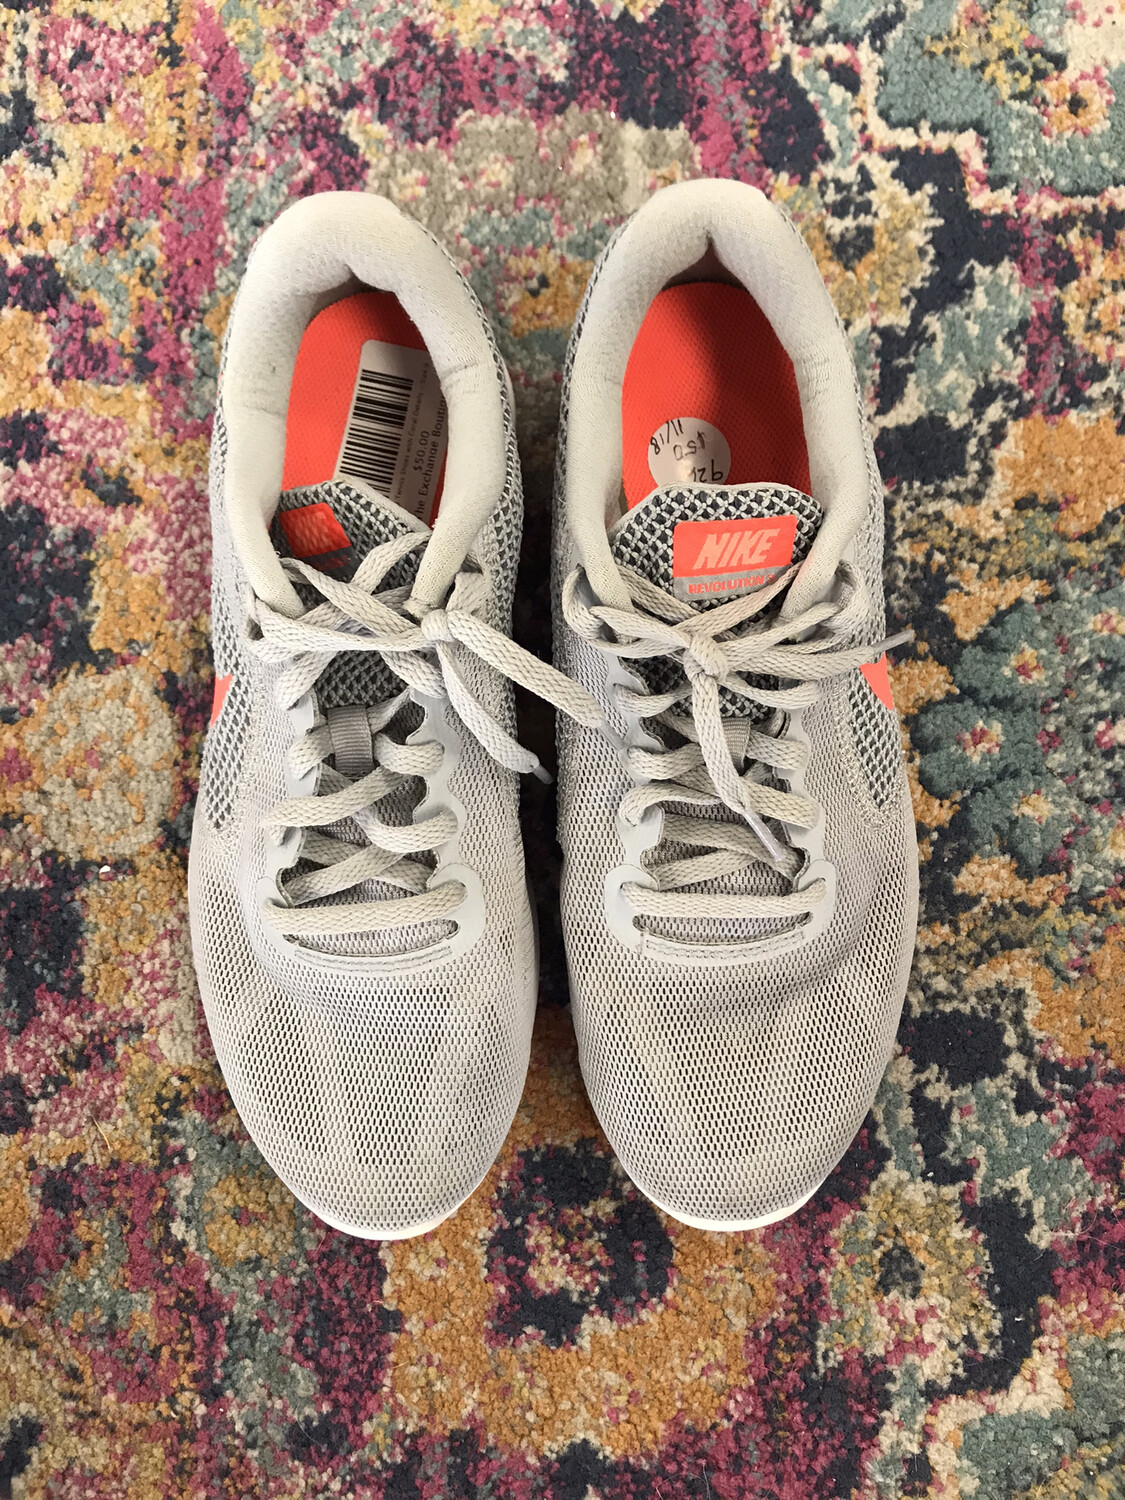 Nike Gray Tennis Shoes with Coral Details - Size 9